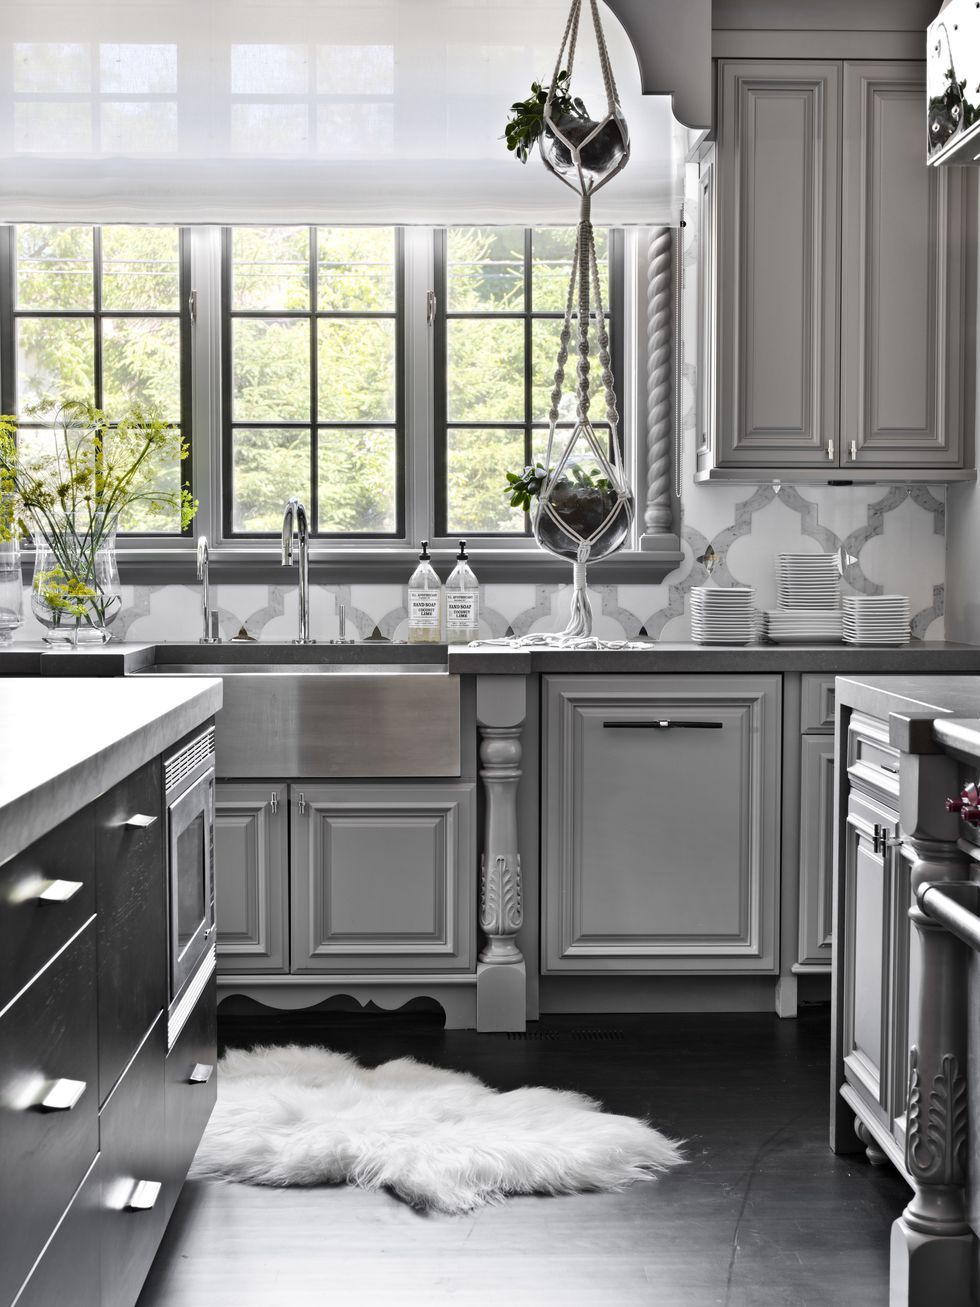 26 Gorgeous Kitchen Tile Backsplashes - Best Kitchen Tile Ideas